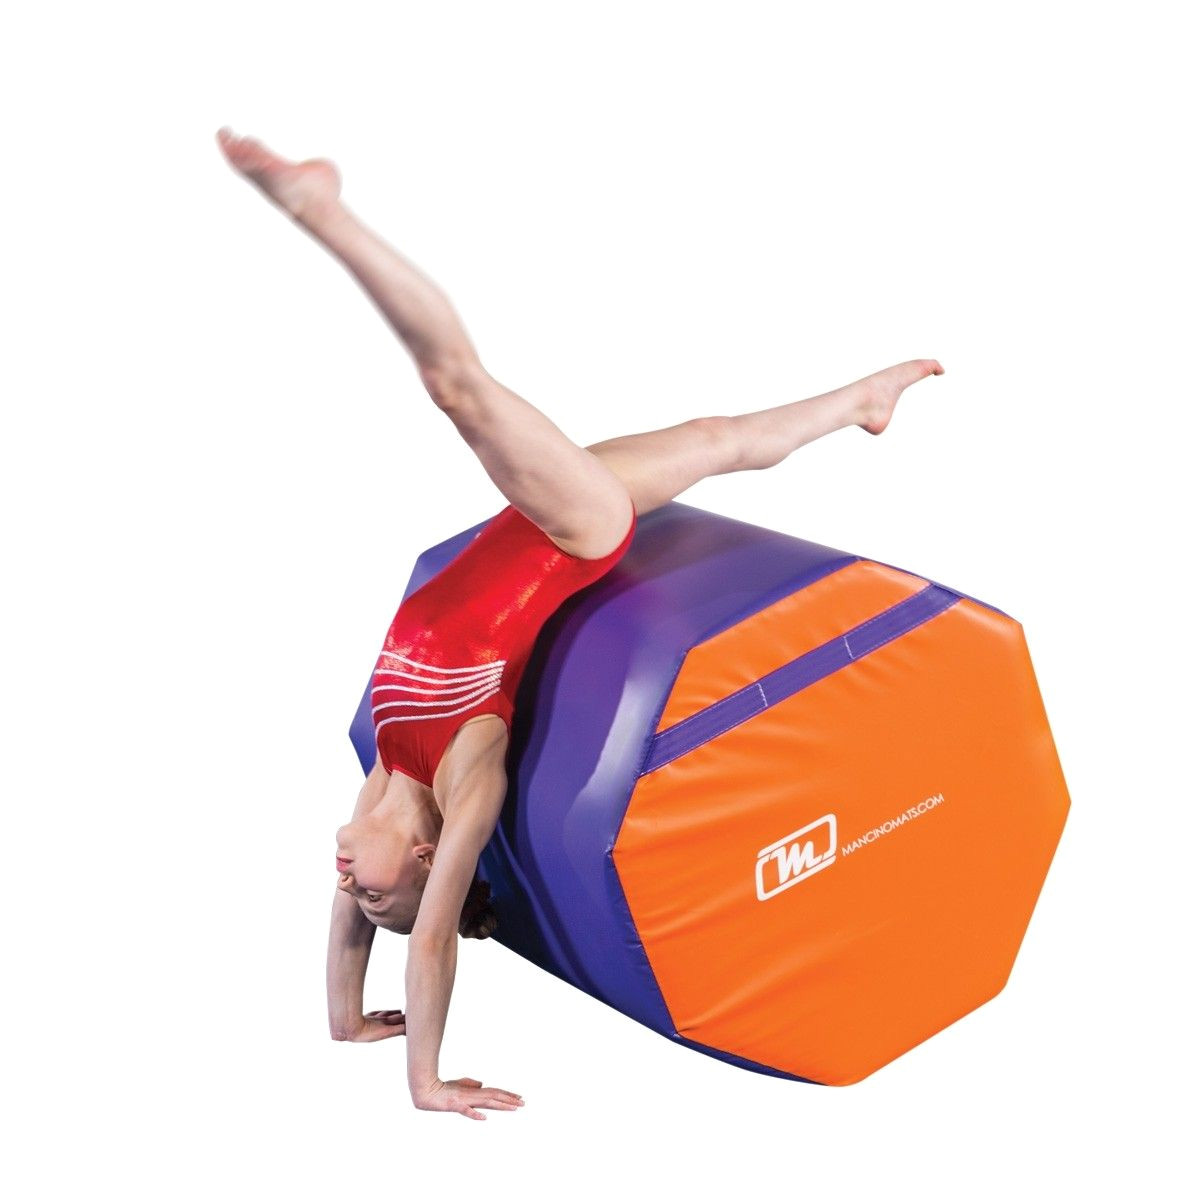 mancino s 30 x 36 purple and orange octagon mat is in stock and ready to ship perfect for any tumblers who need to practice at home to keep up and exceed